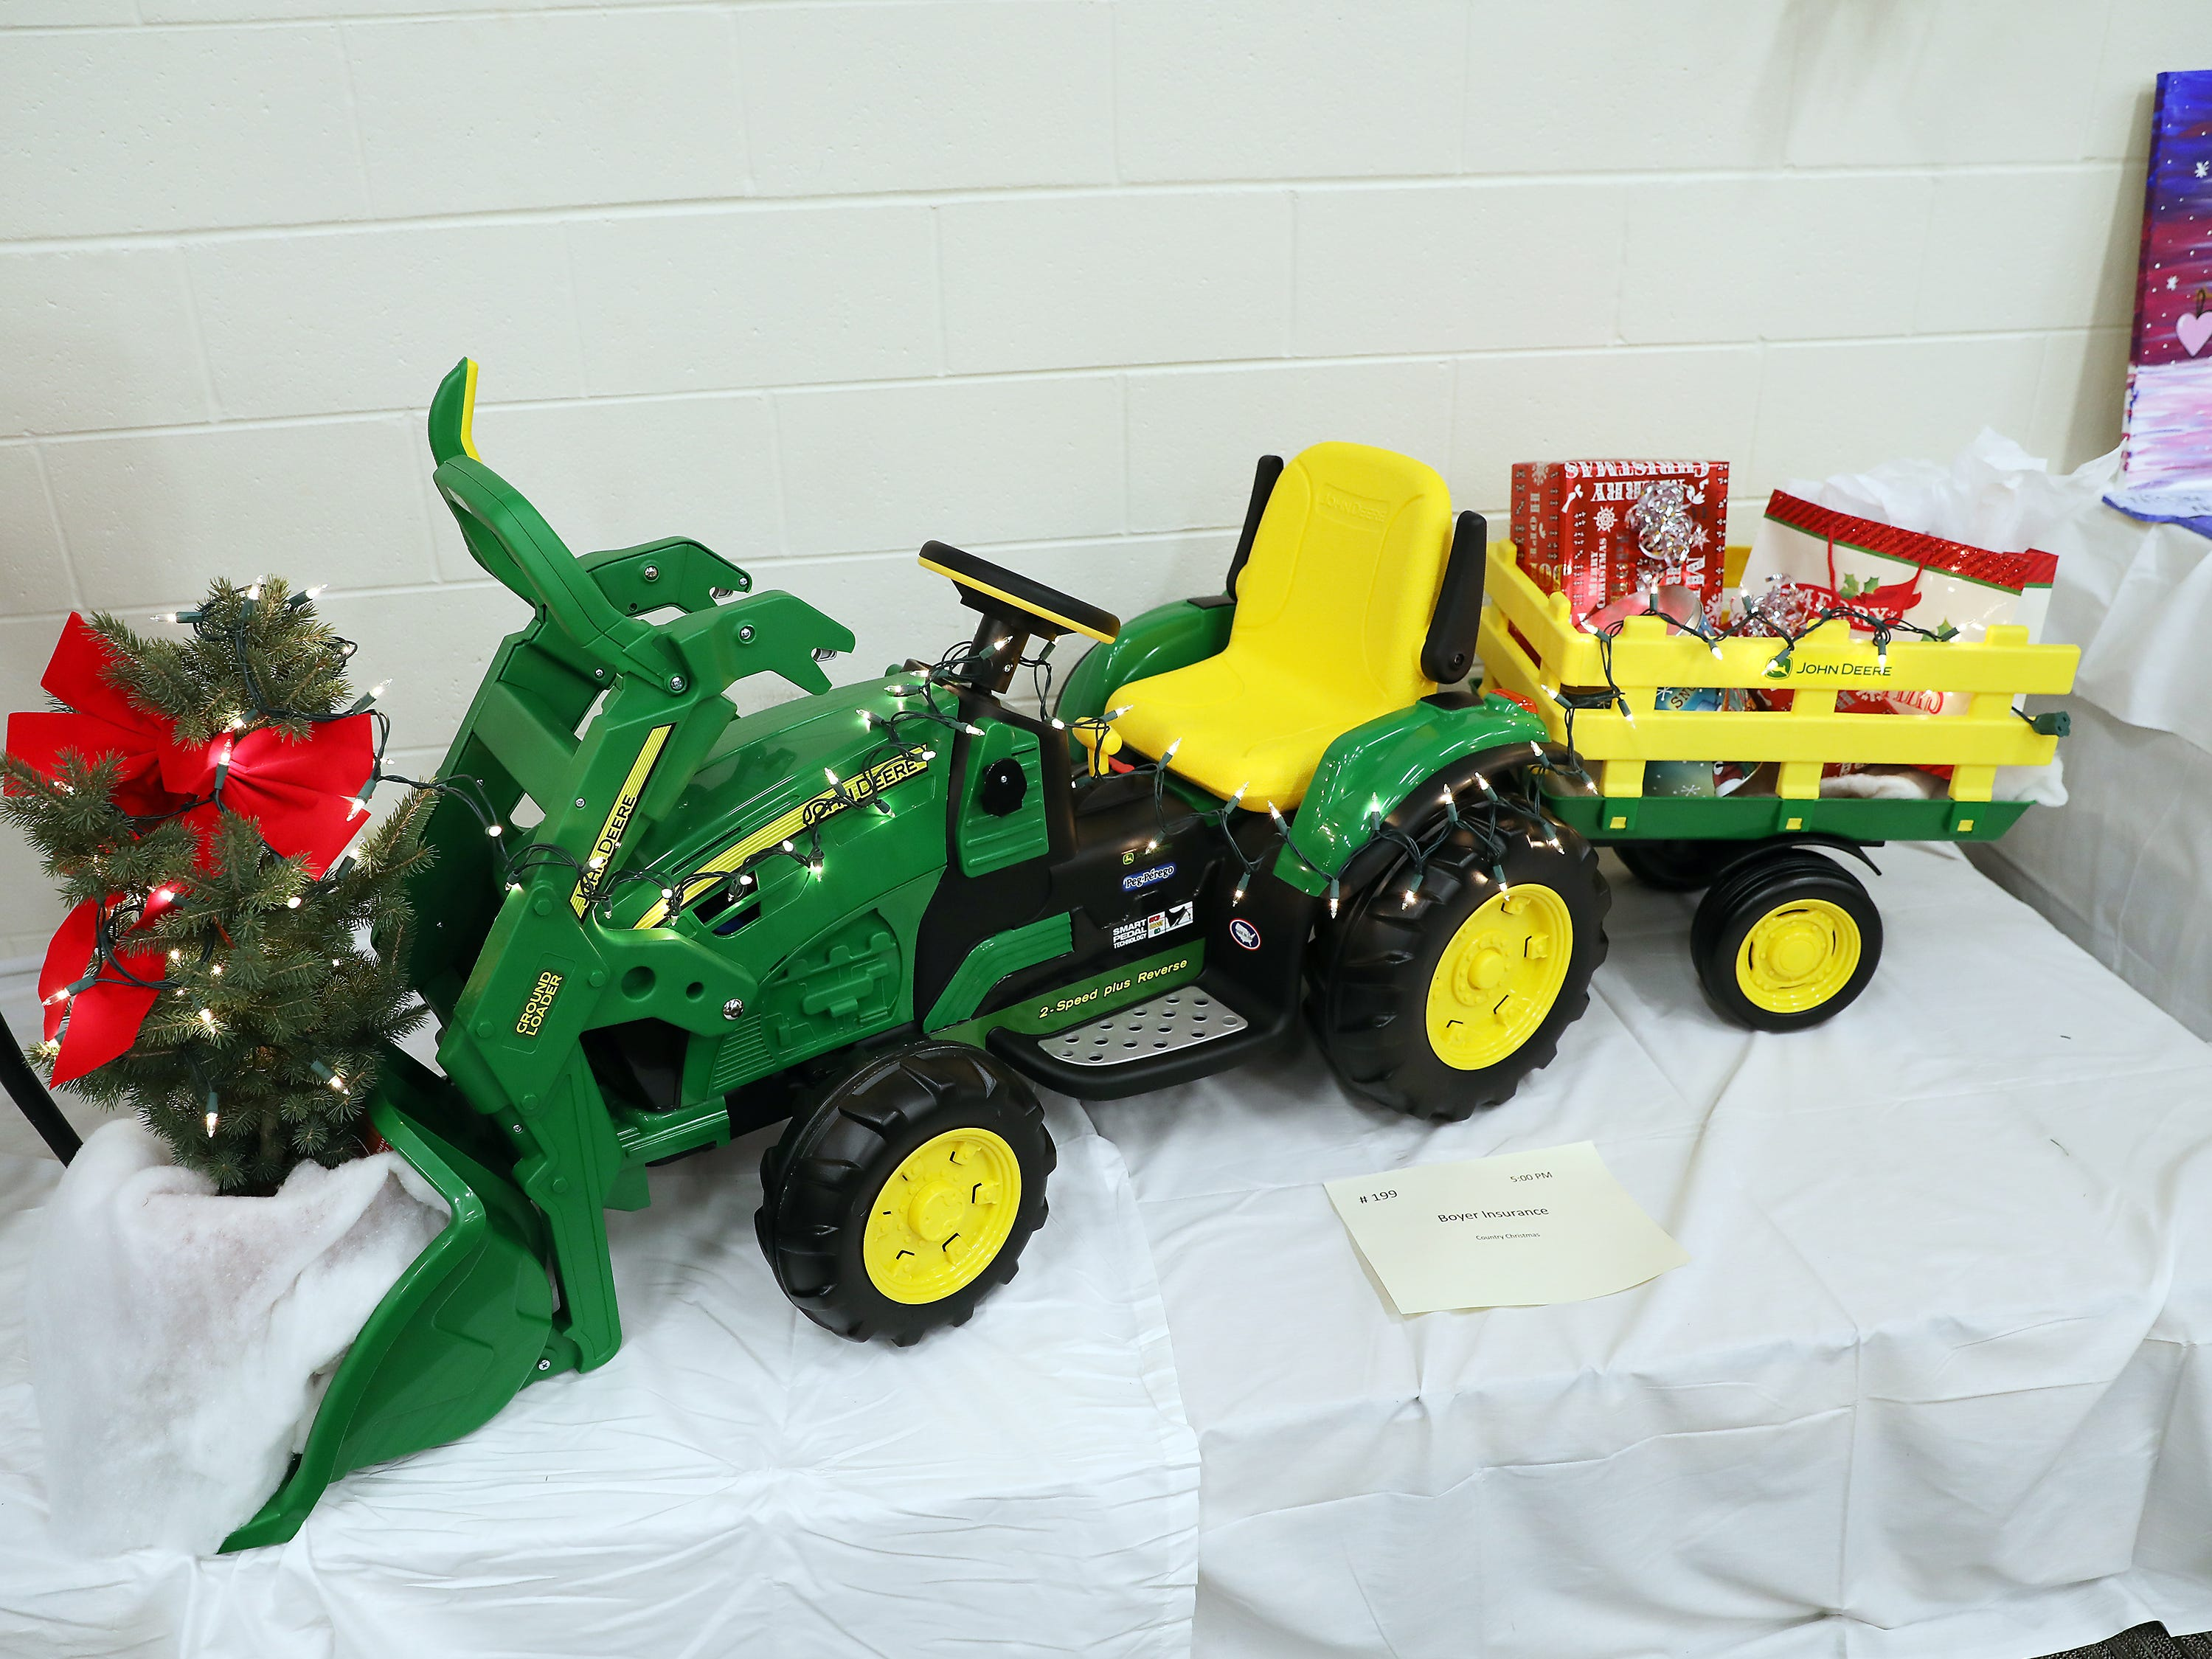 1995:00 PMBoyer InsuranceOtherCountry ChristmasA John Deere battery powered tactor with wagon and bucket!Entry is incentive.